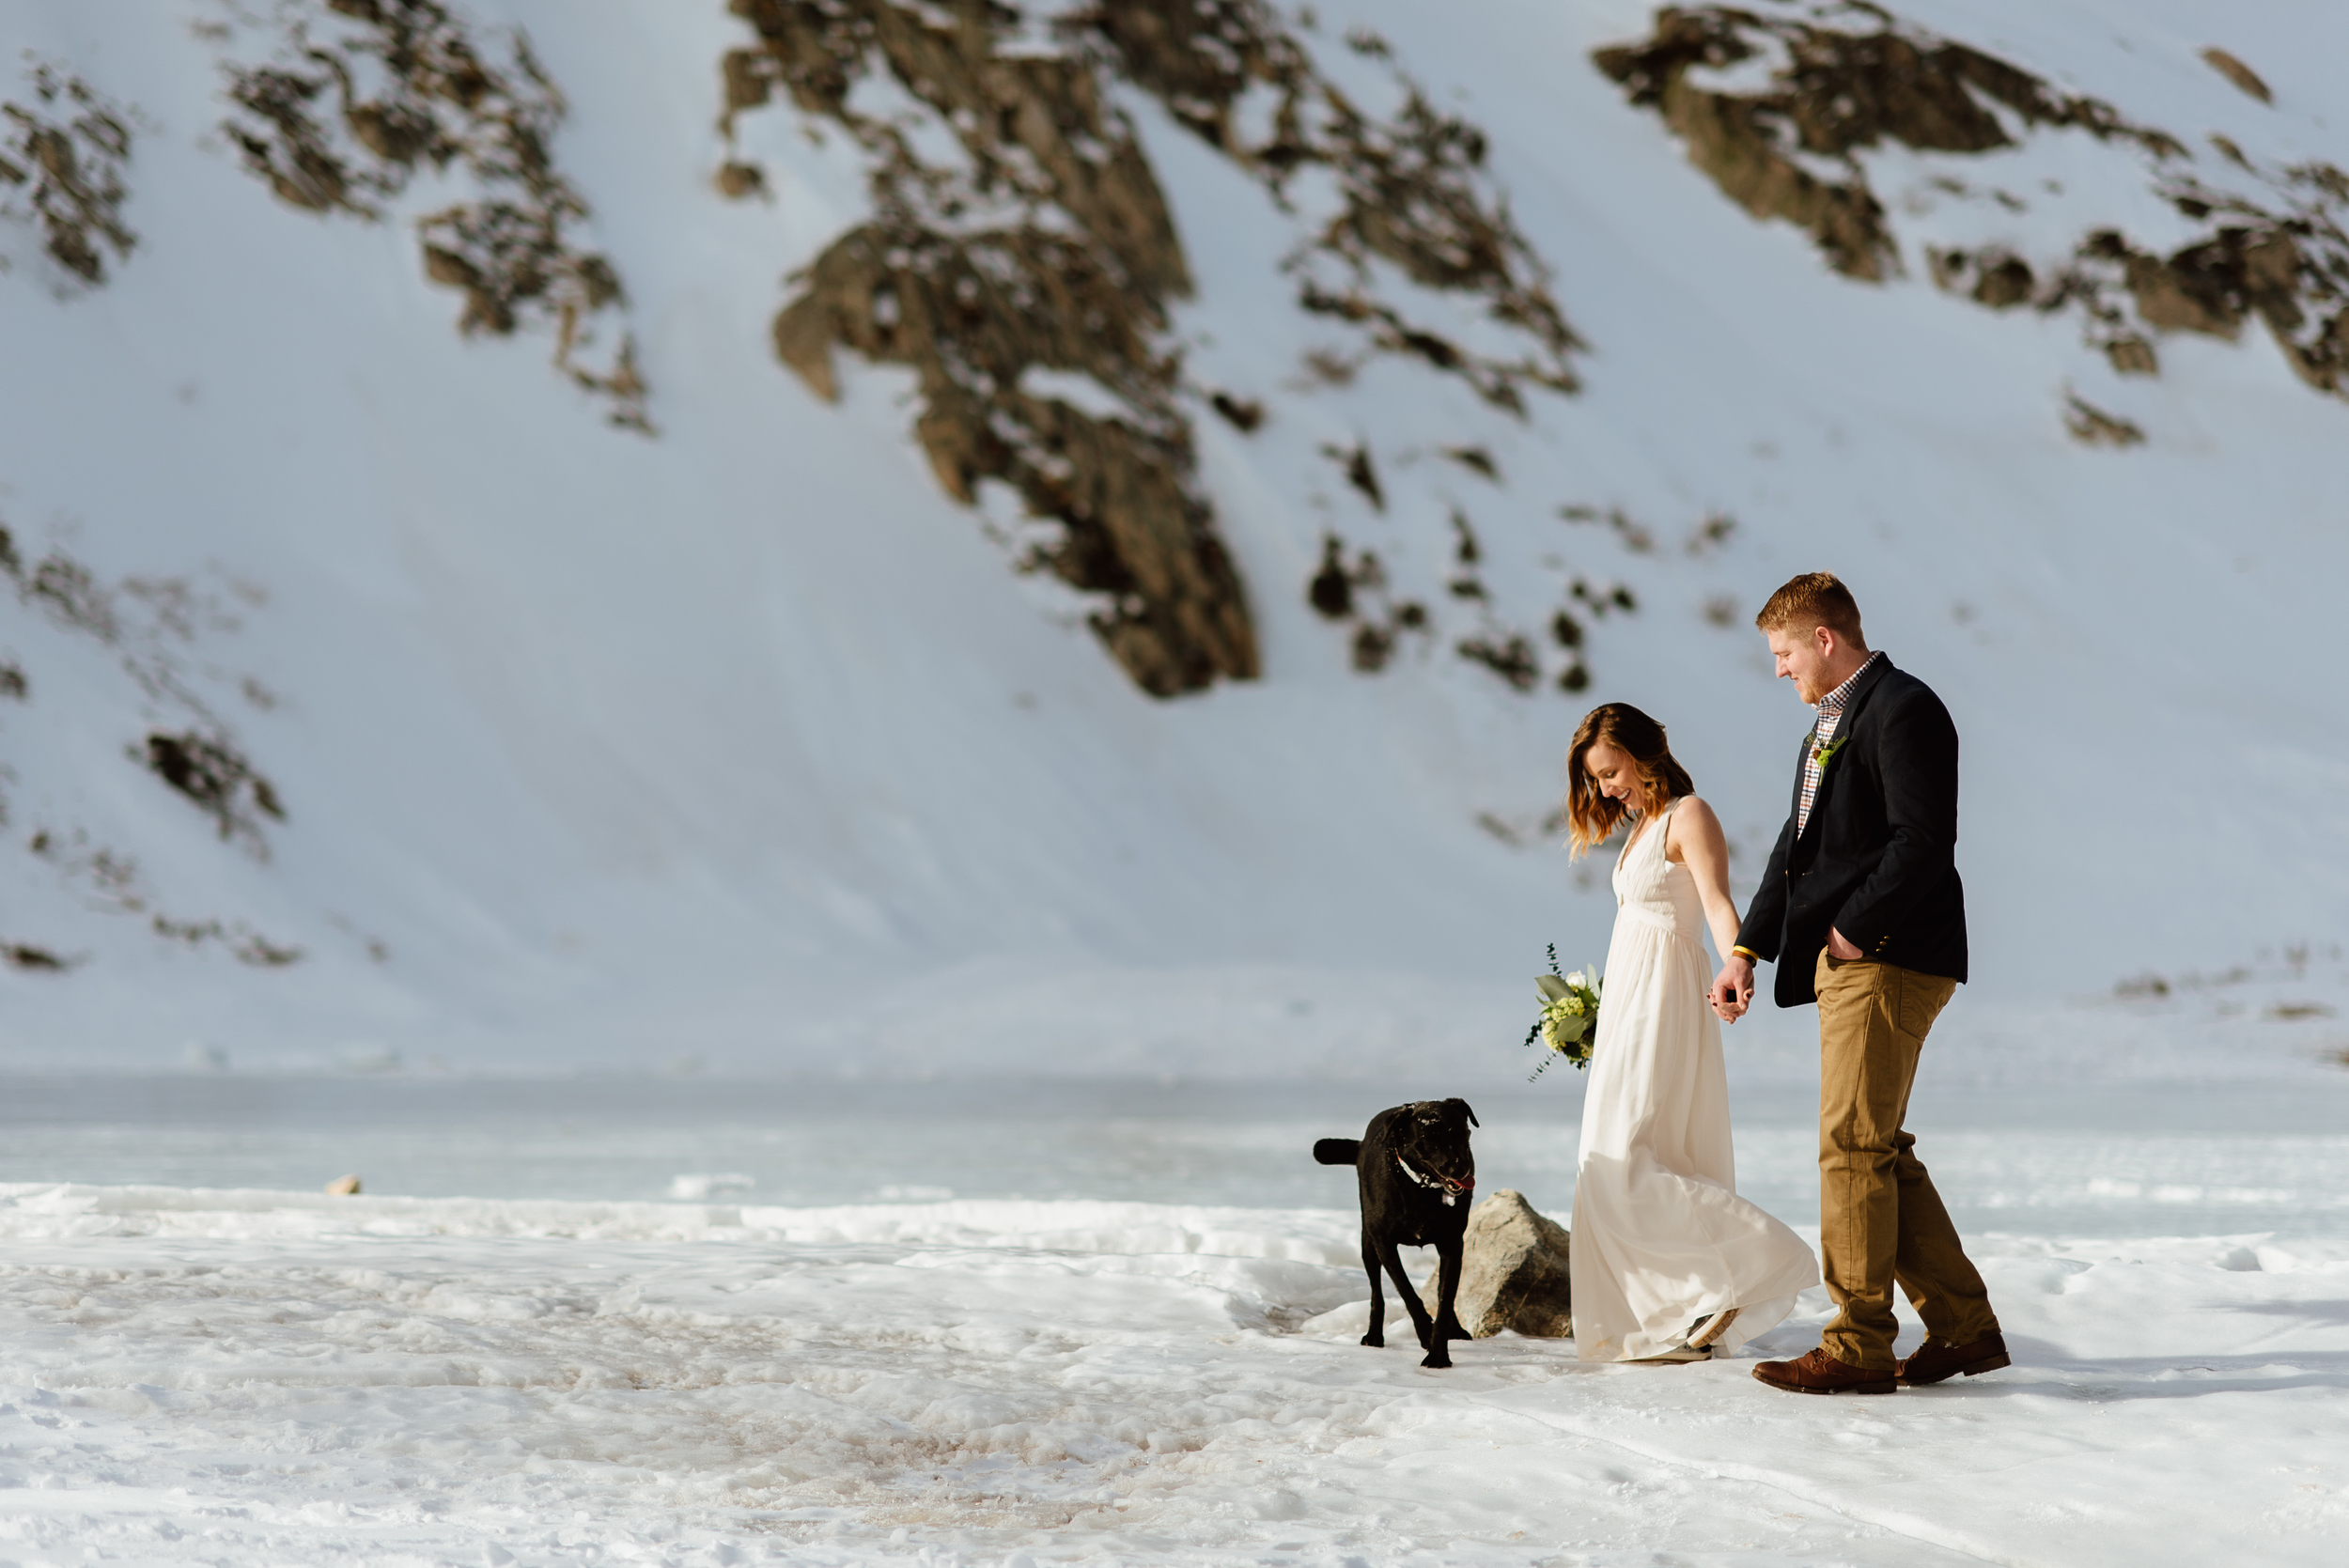 So cute how Kelsie and Tyler brought their pup along to their secluded, mountain elopement in the Rocky Mountains! I'd love to run away with my husband-to-be for such a romantic and intimate elopement experience!| Intimate wedding photos by mountain elopement photographer, Maddie Mae.